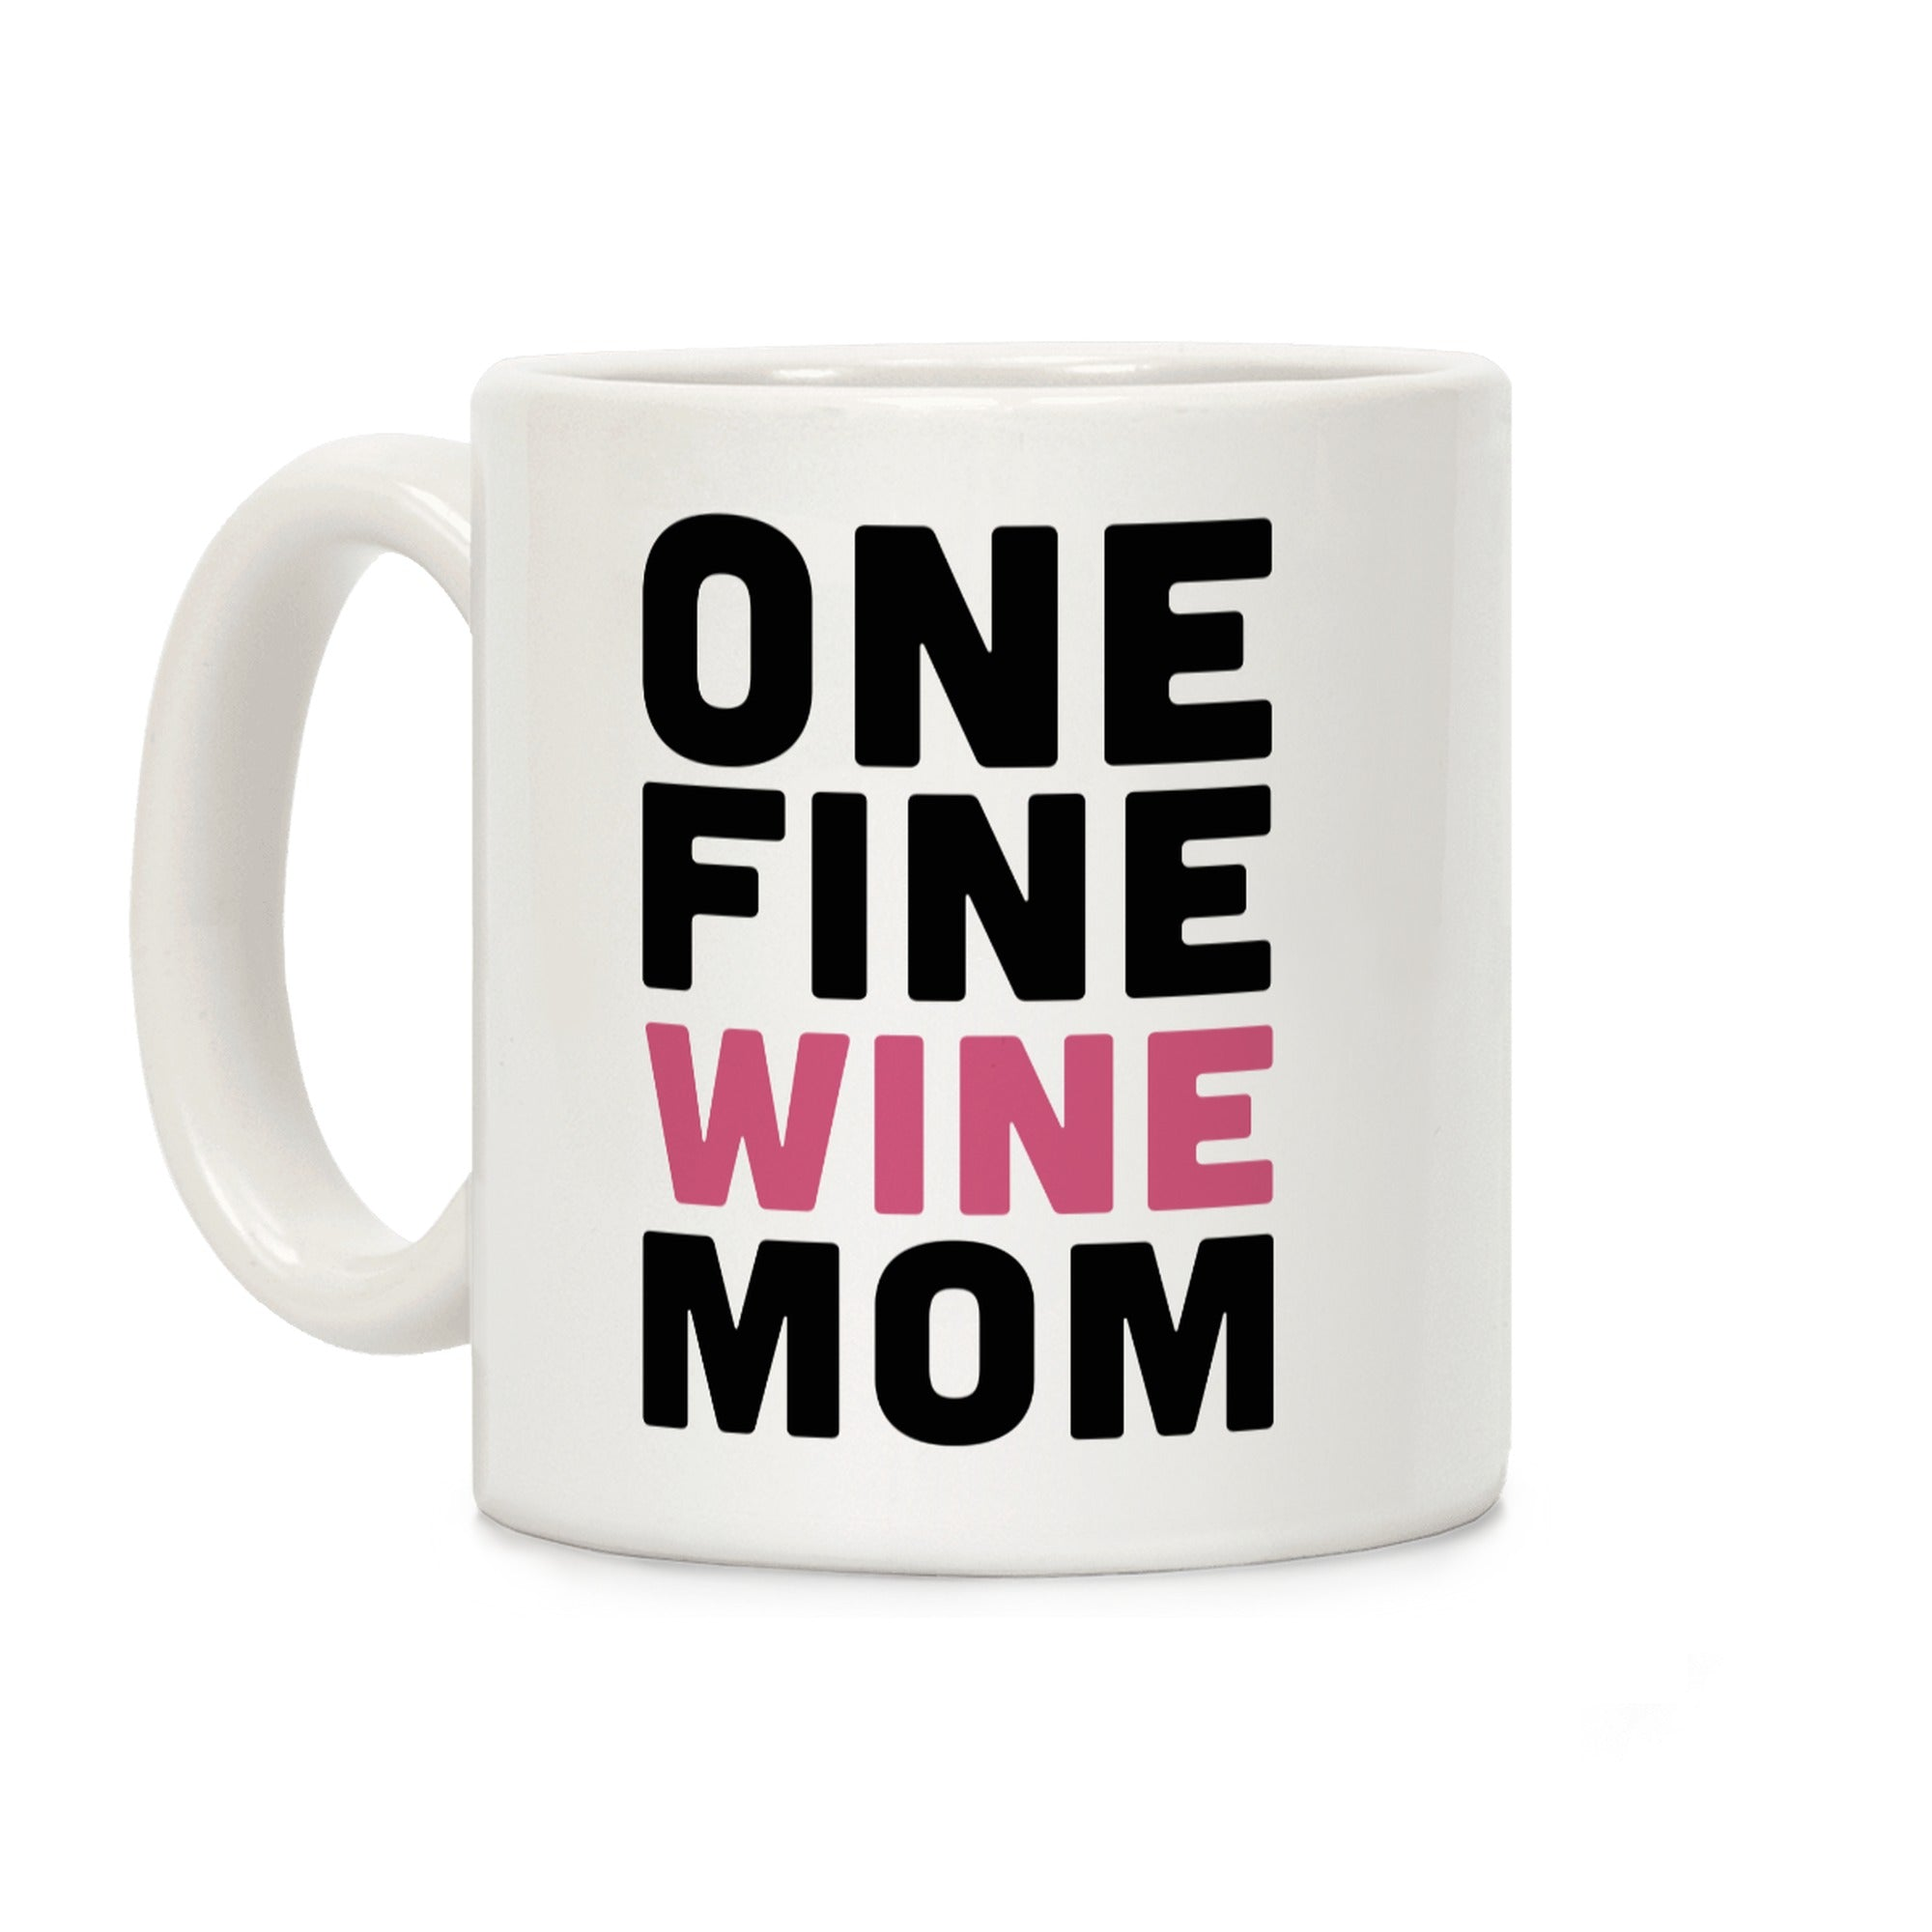 One Fine Wine Mom Ceramic Coffee Mug by LookHUMAN